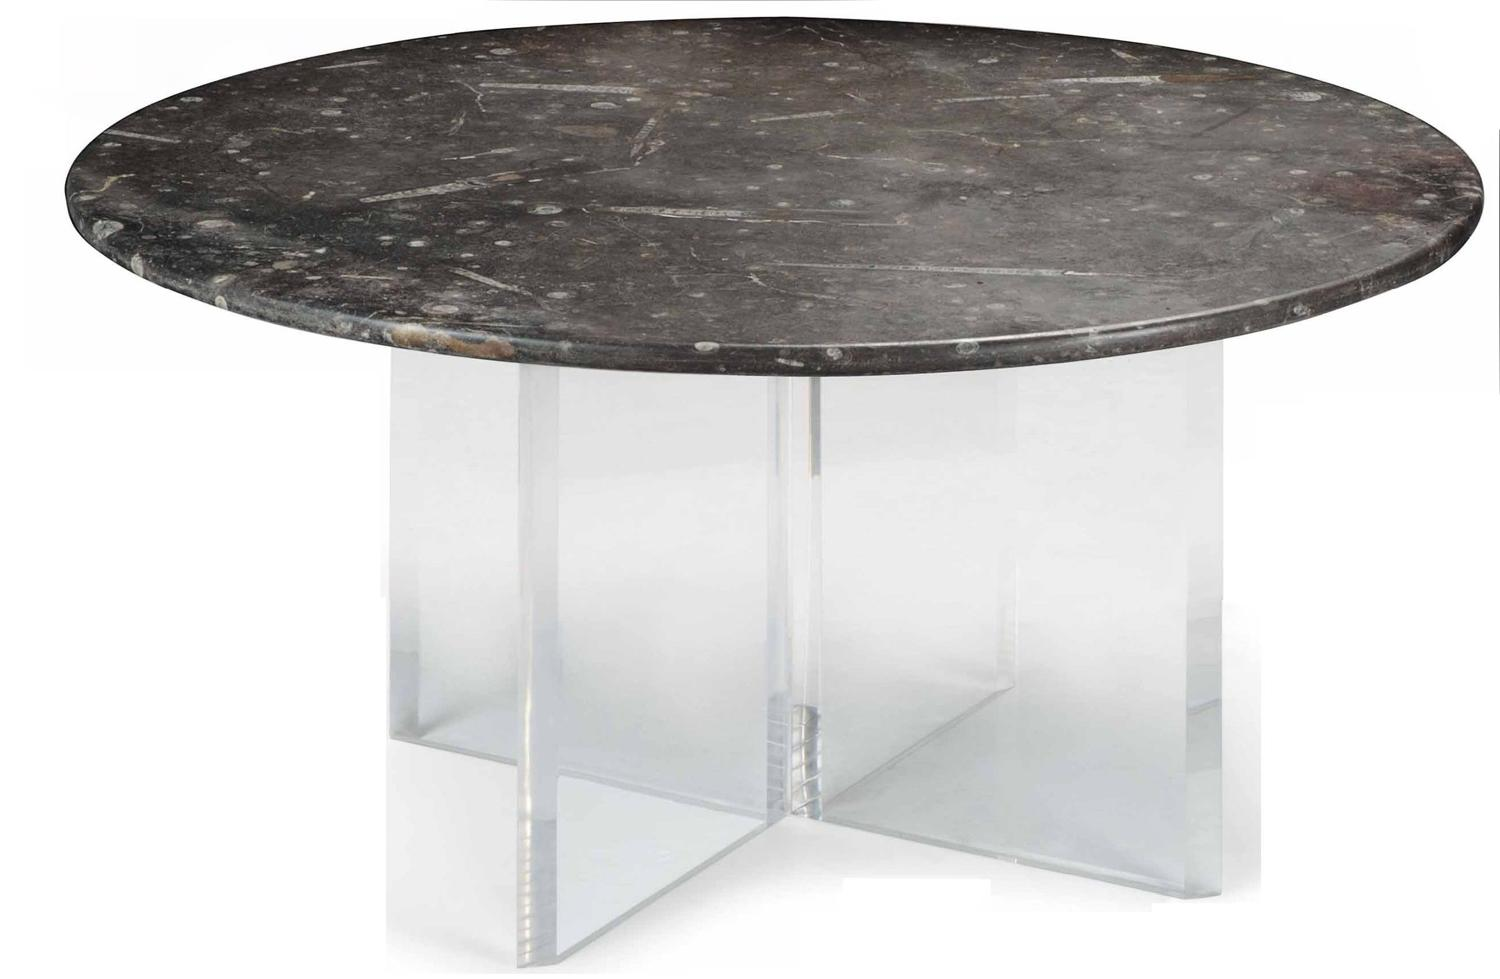 C19th marble table top